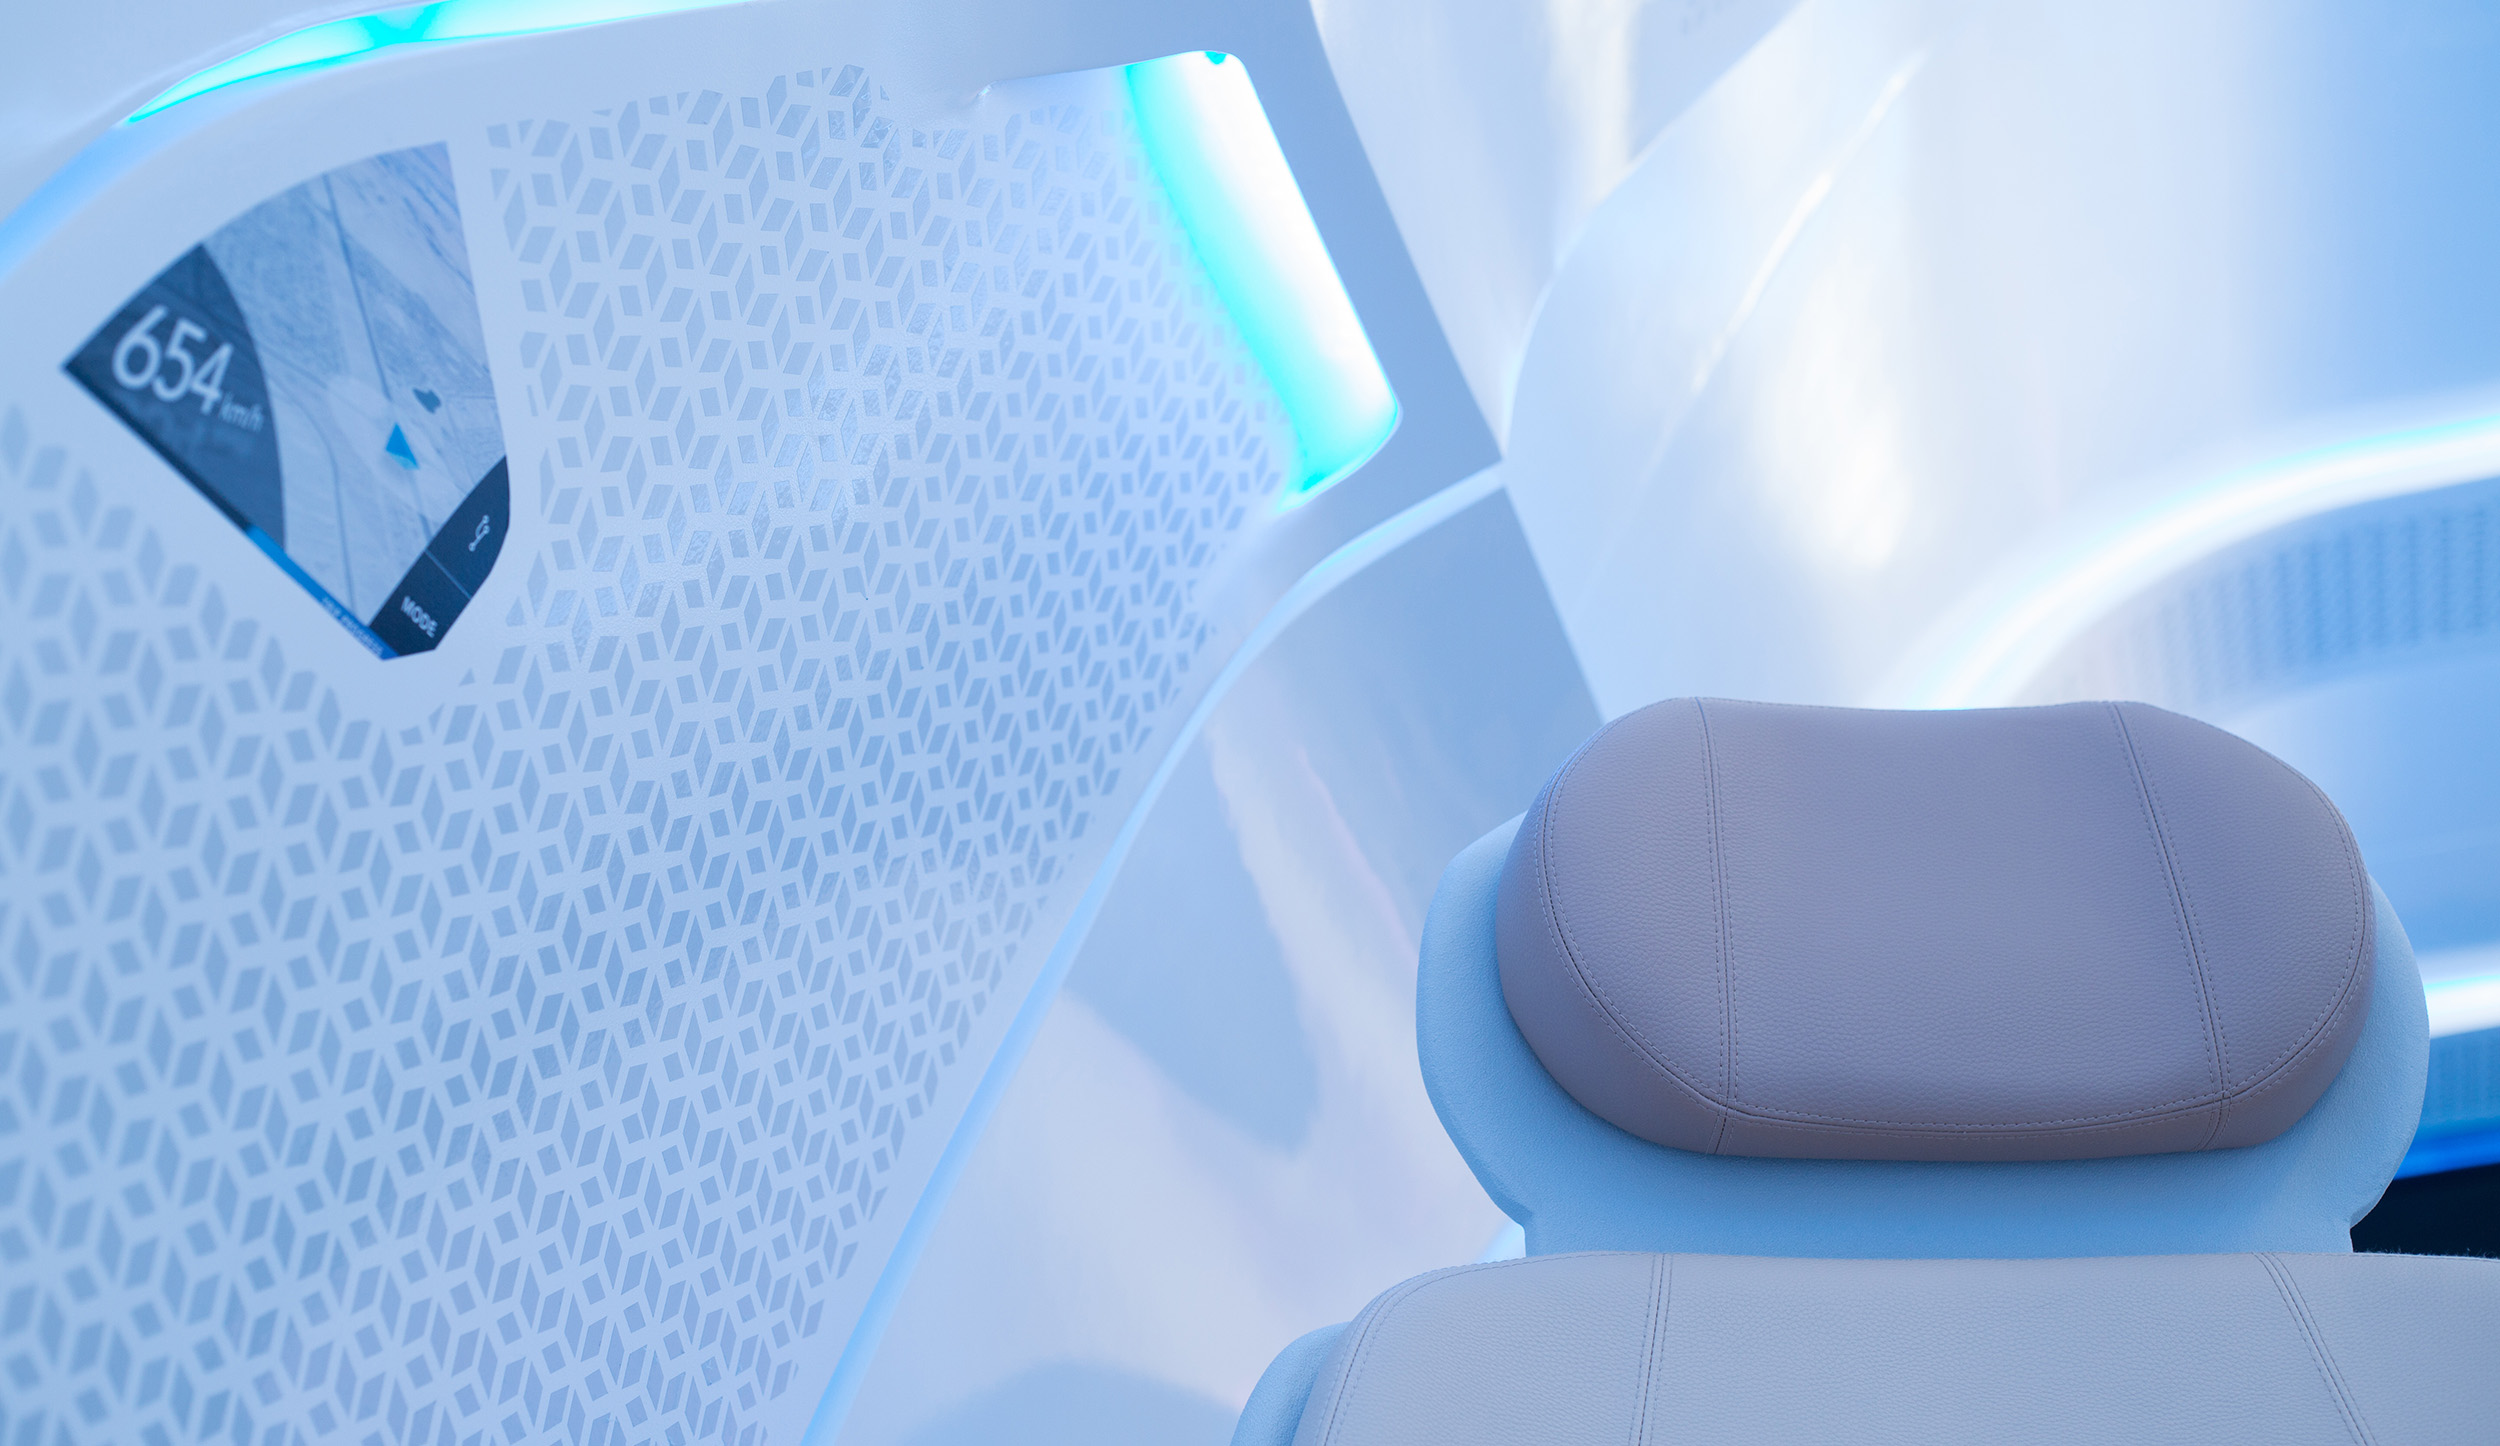 hyperloop seats close up